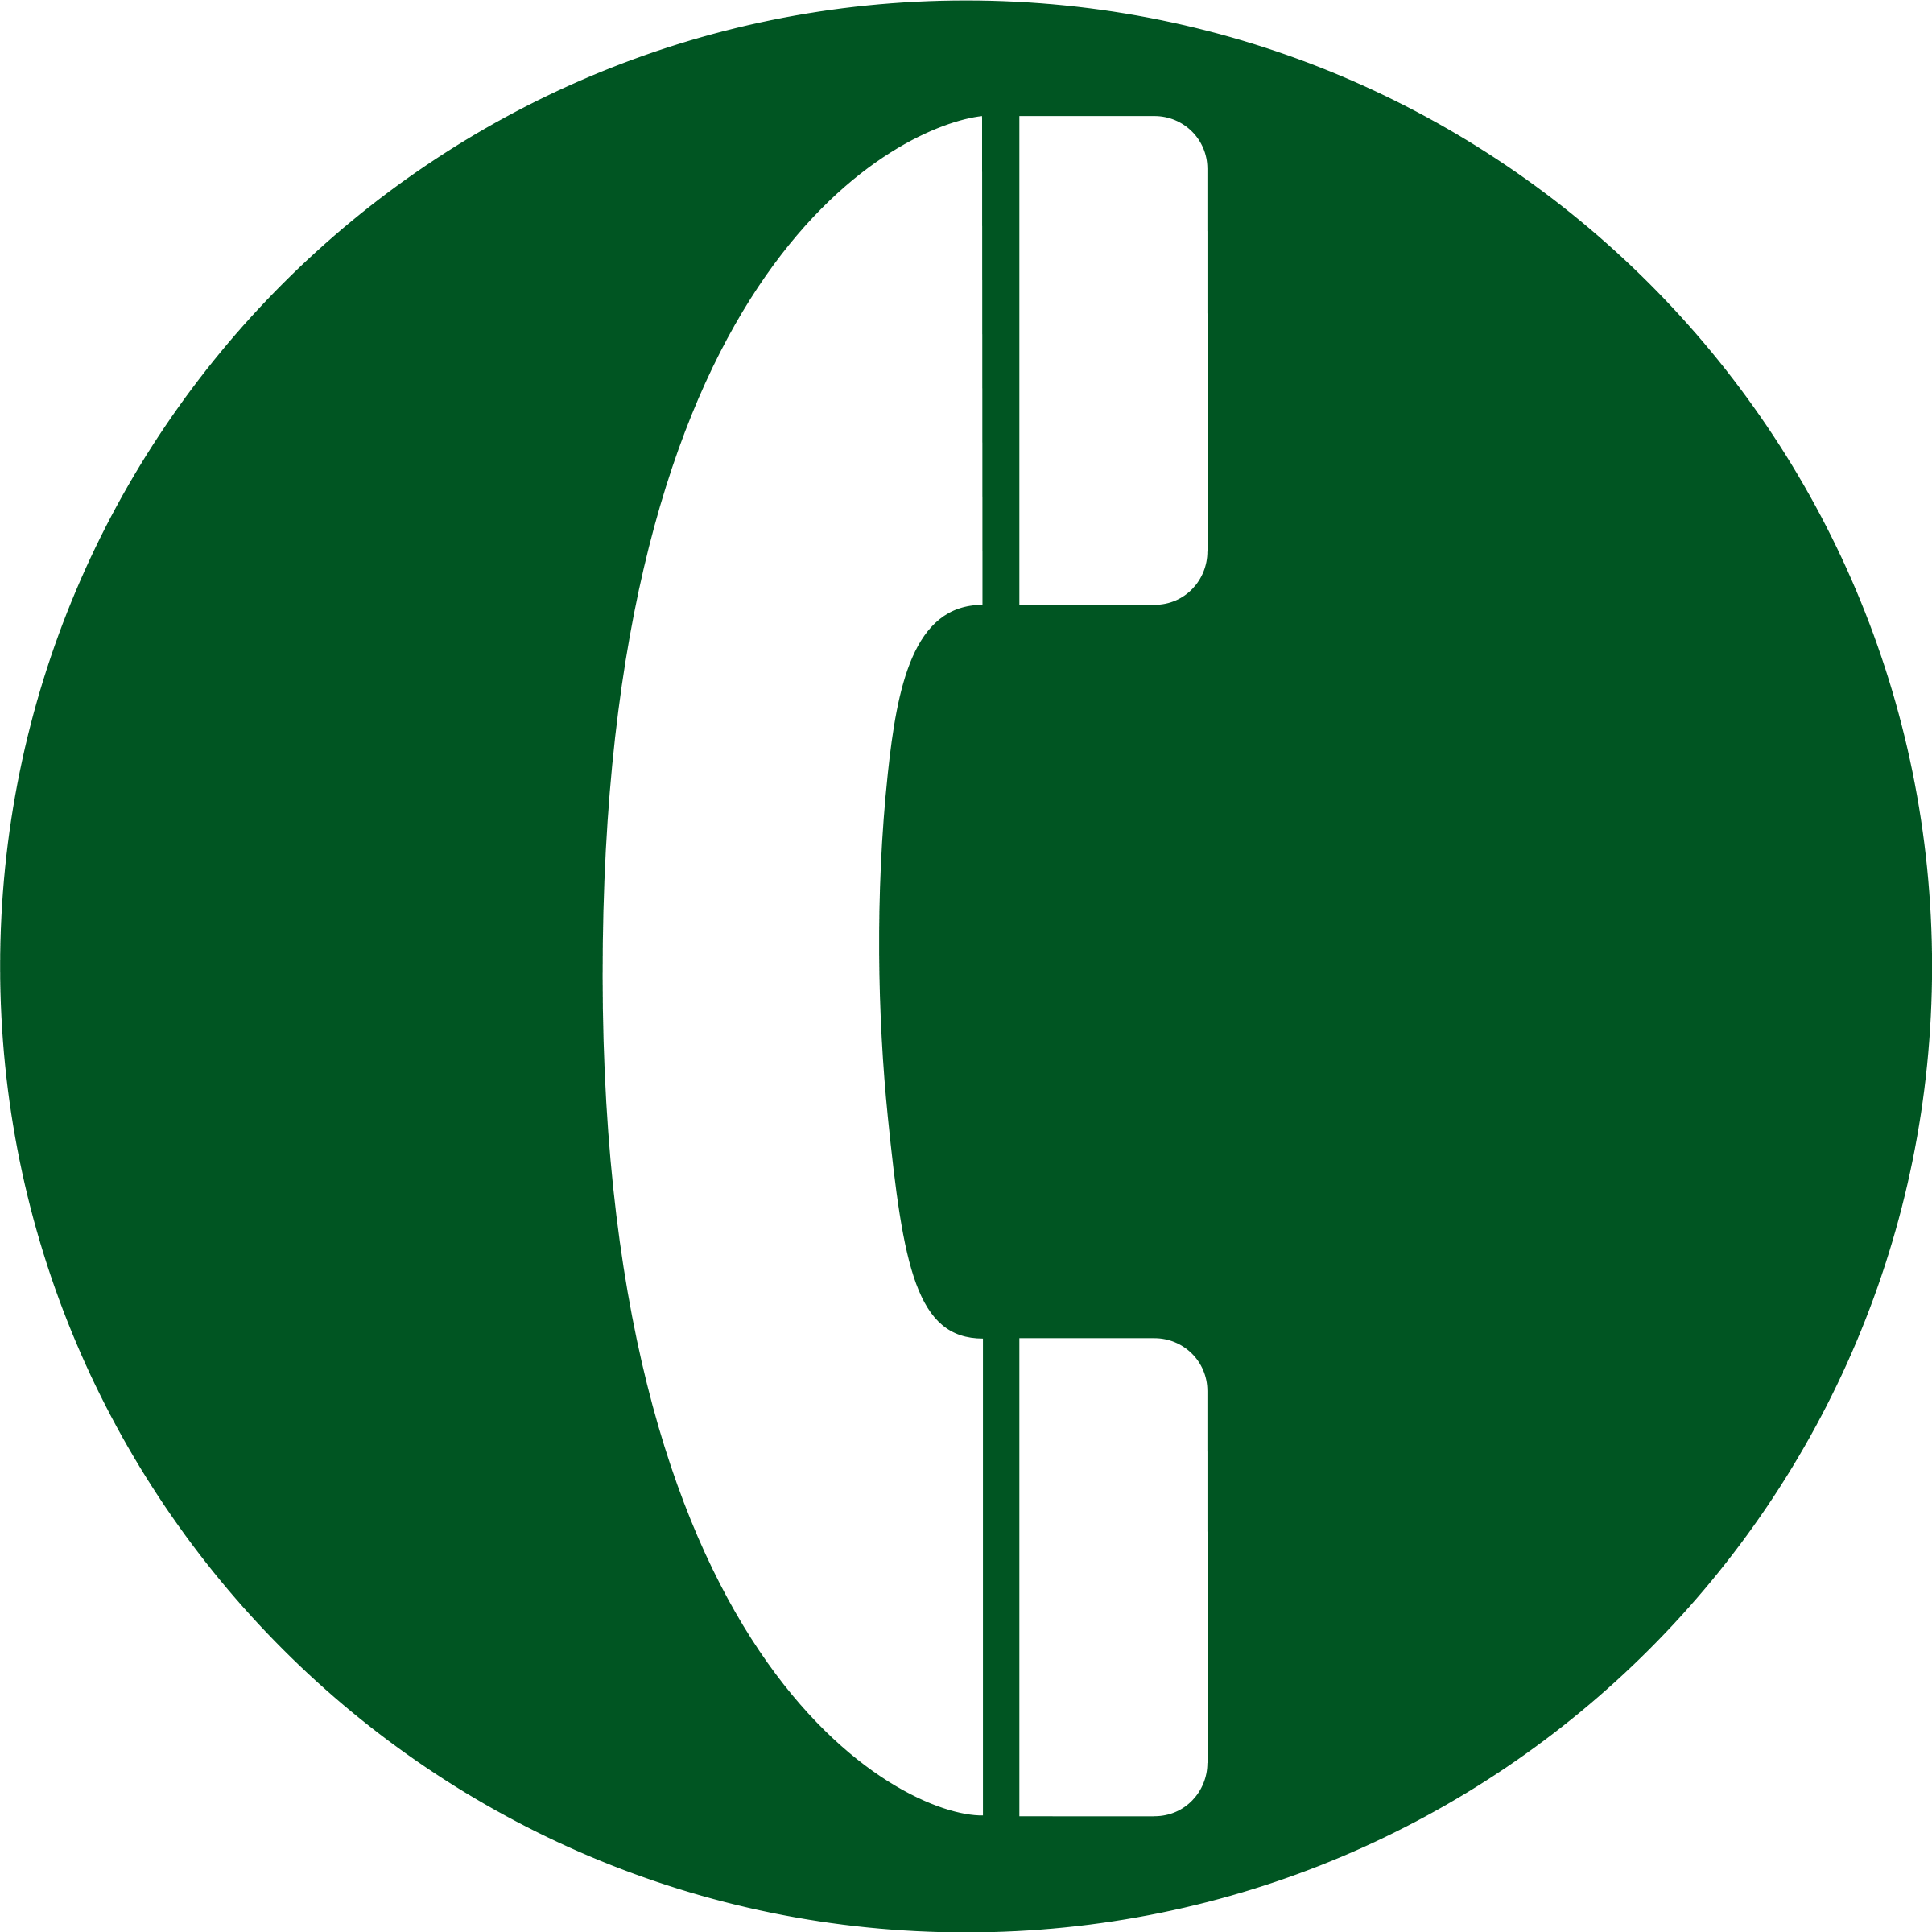 Telephone Images Free - Cliparts.co